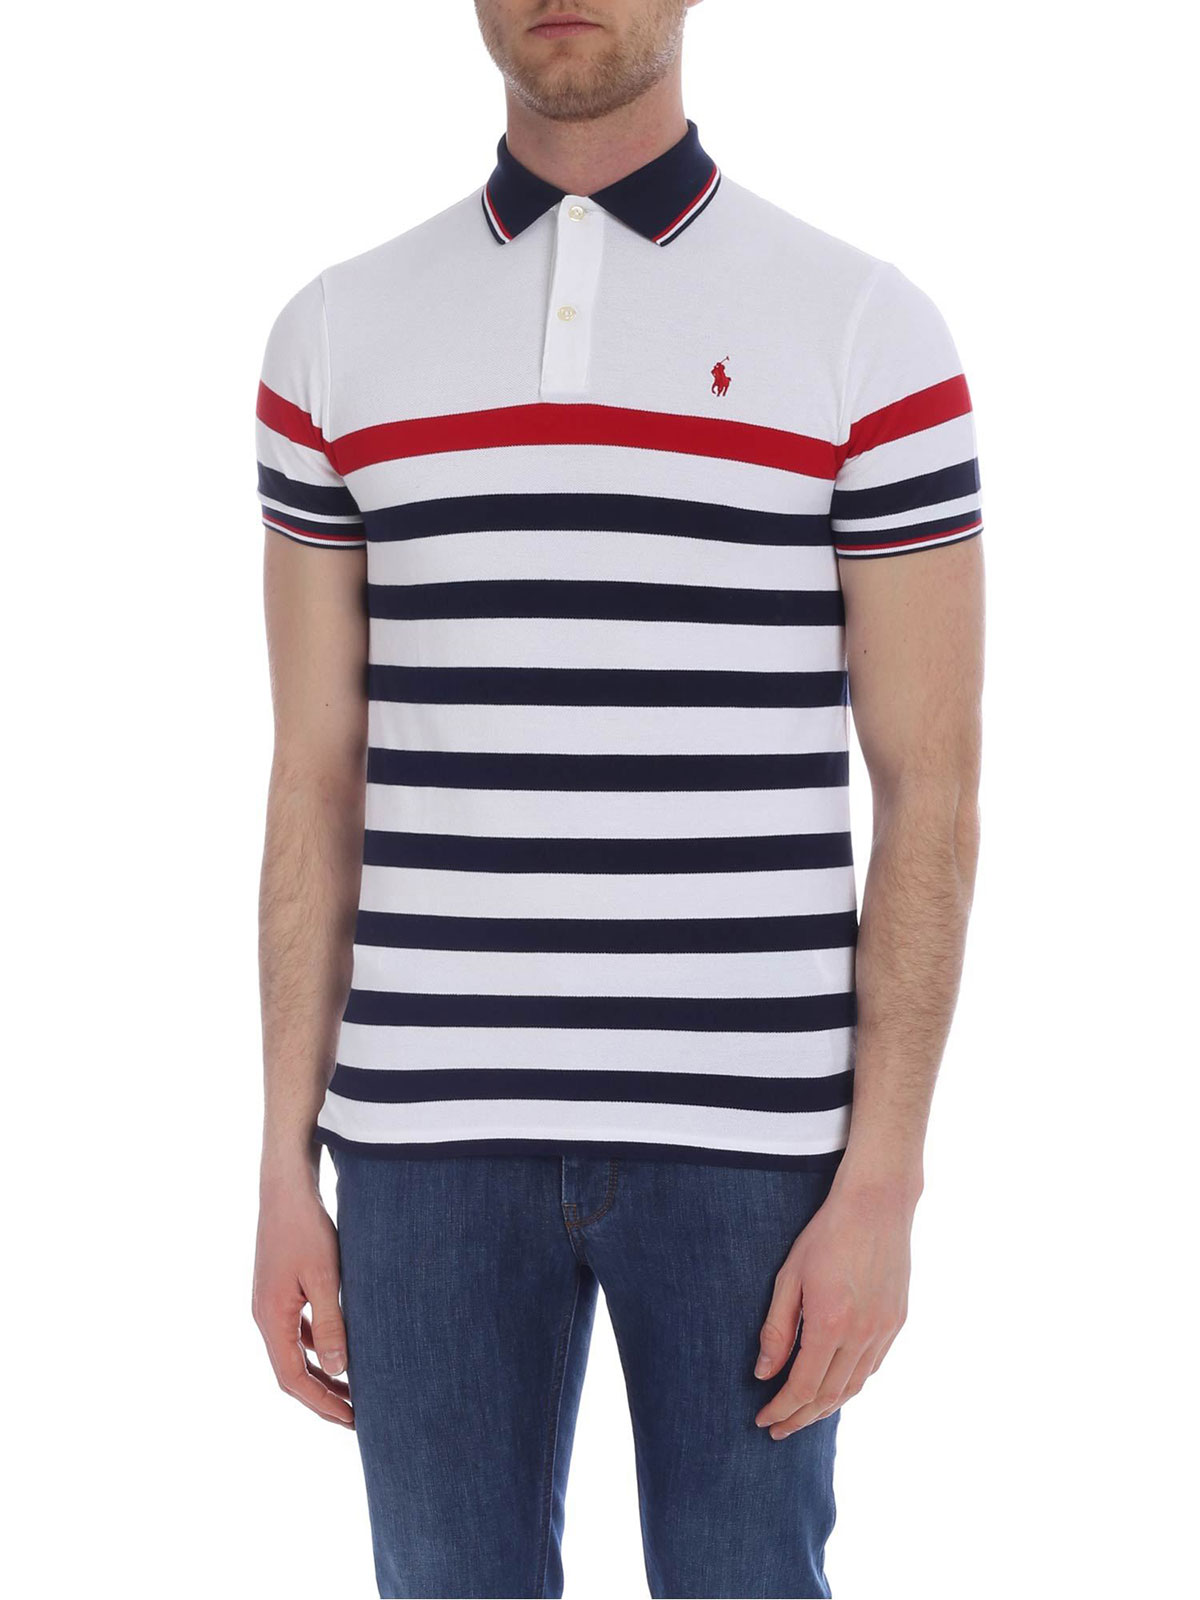 differently 3f5b0 7df5e POLO RALPH LAUREN Men's Striped Polo Shirt